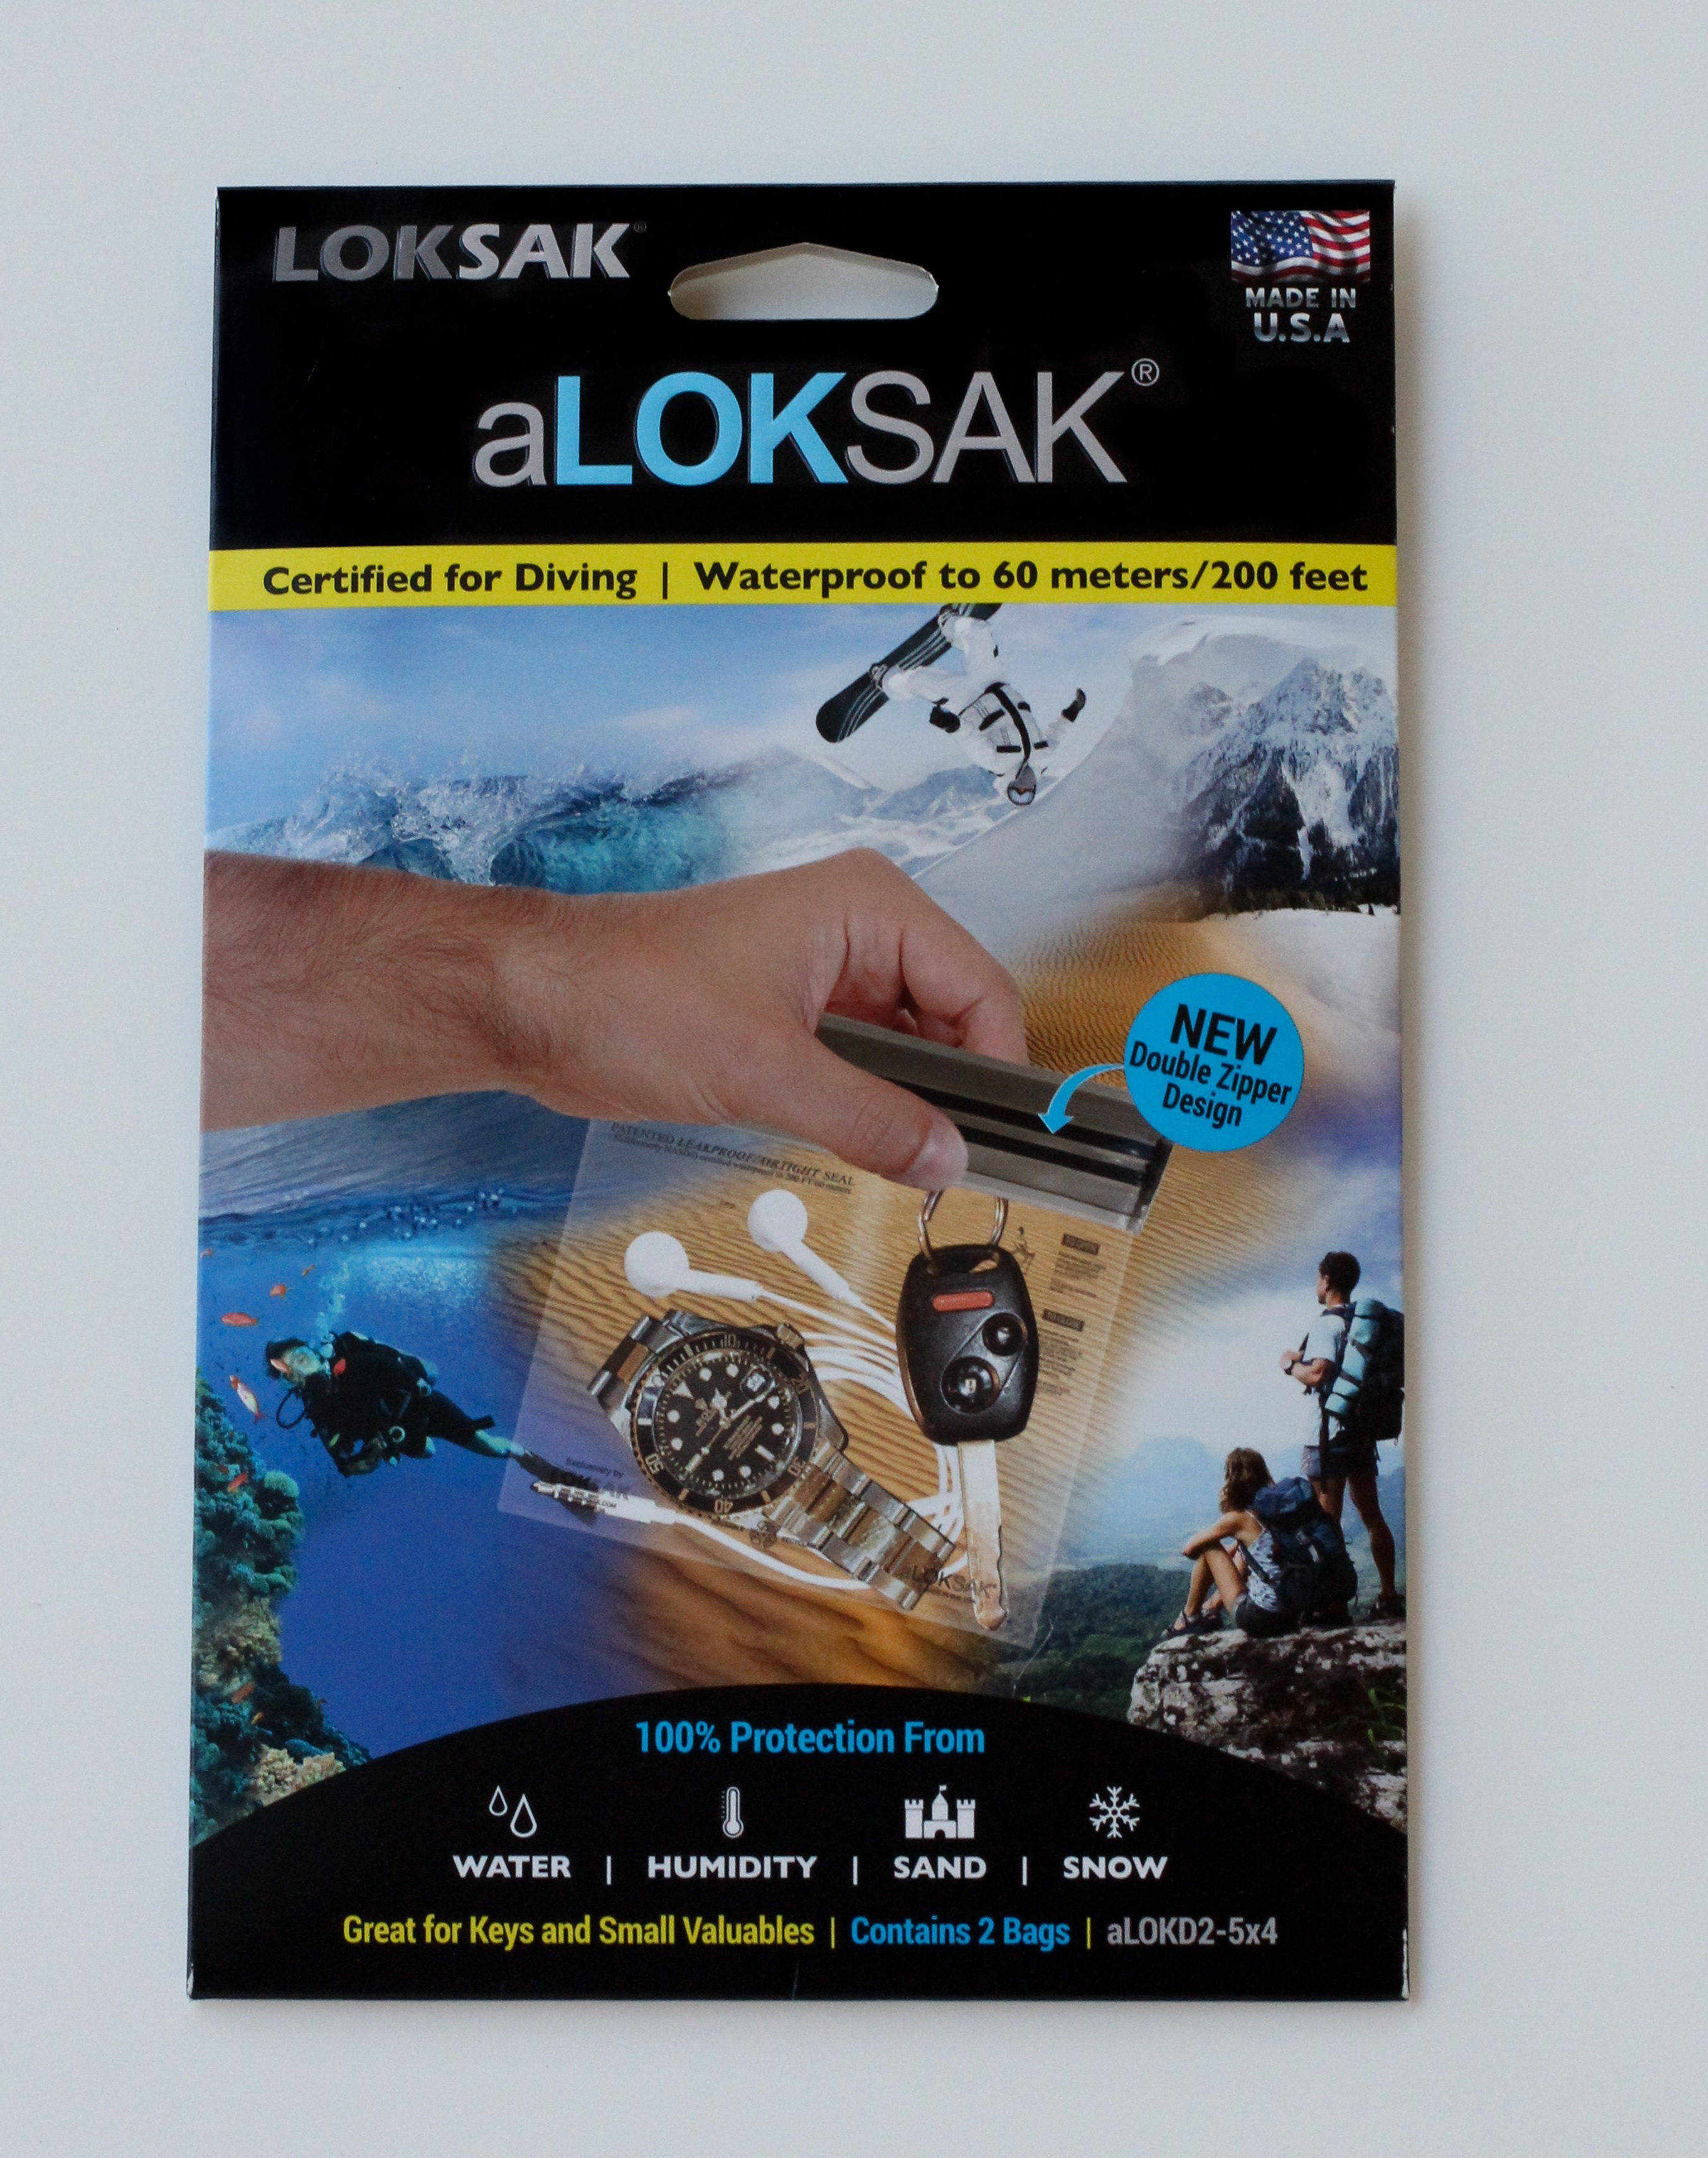 ALOKD2-5x4 - LOKSAK 2 each of 5